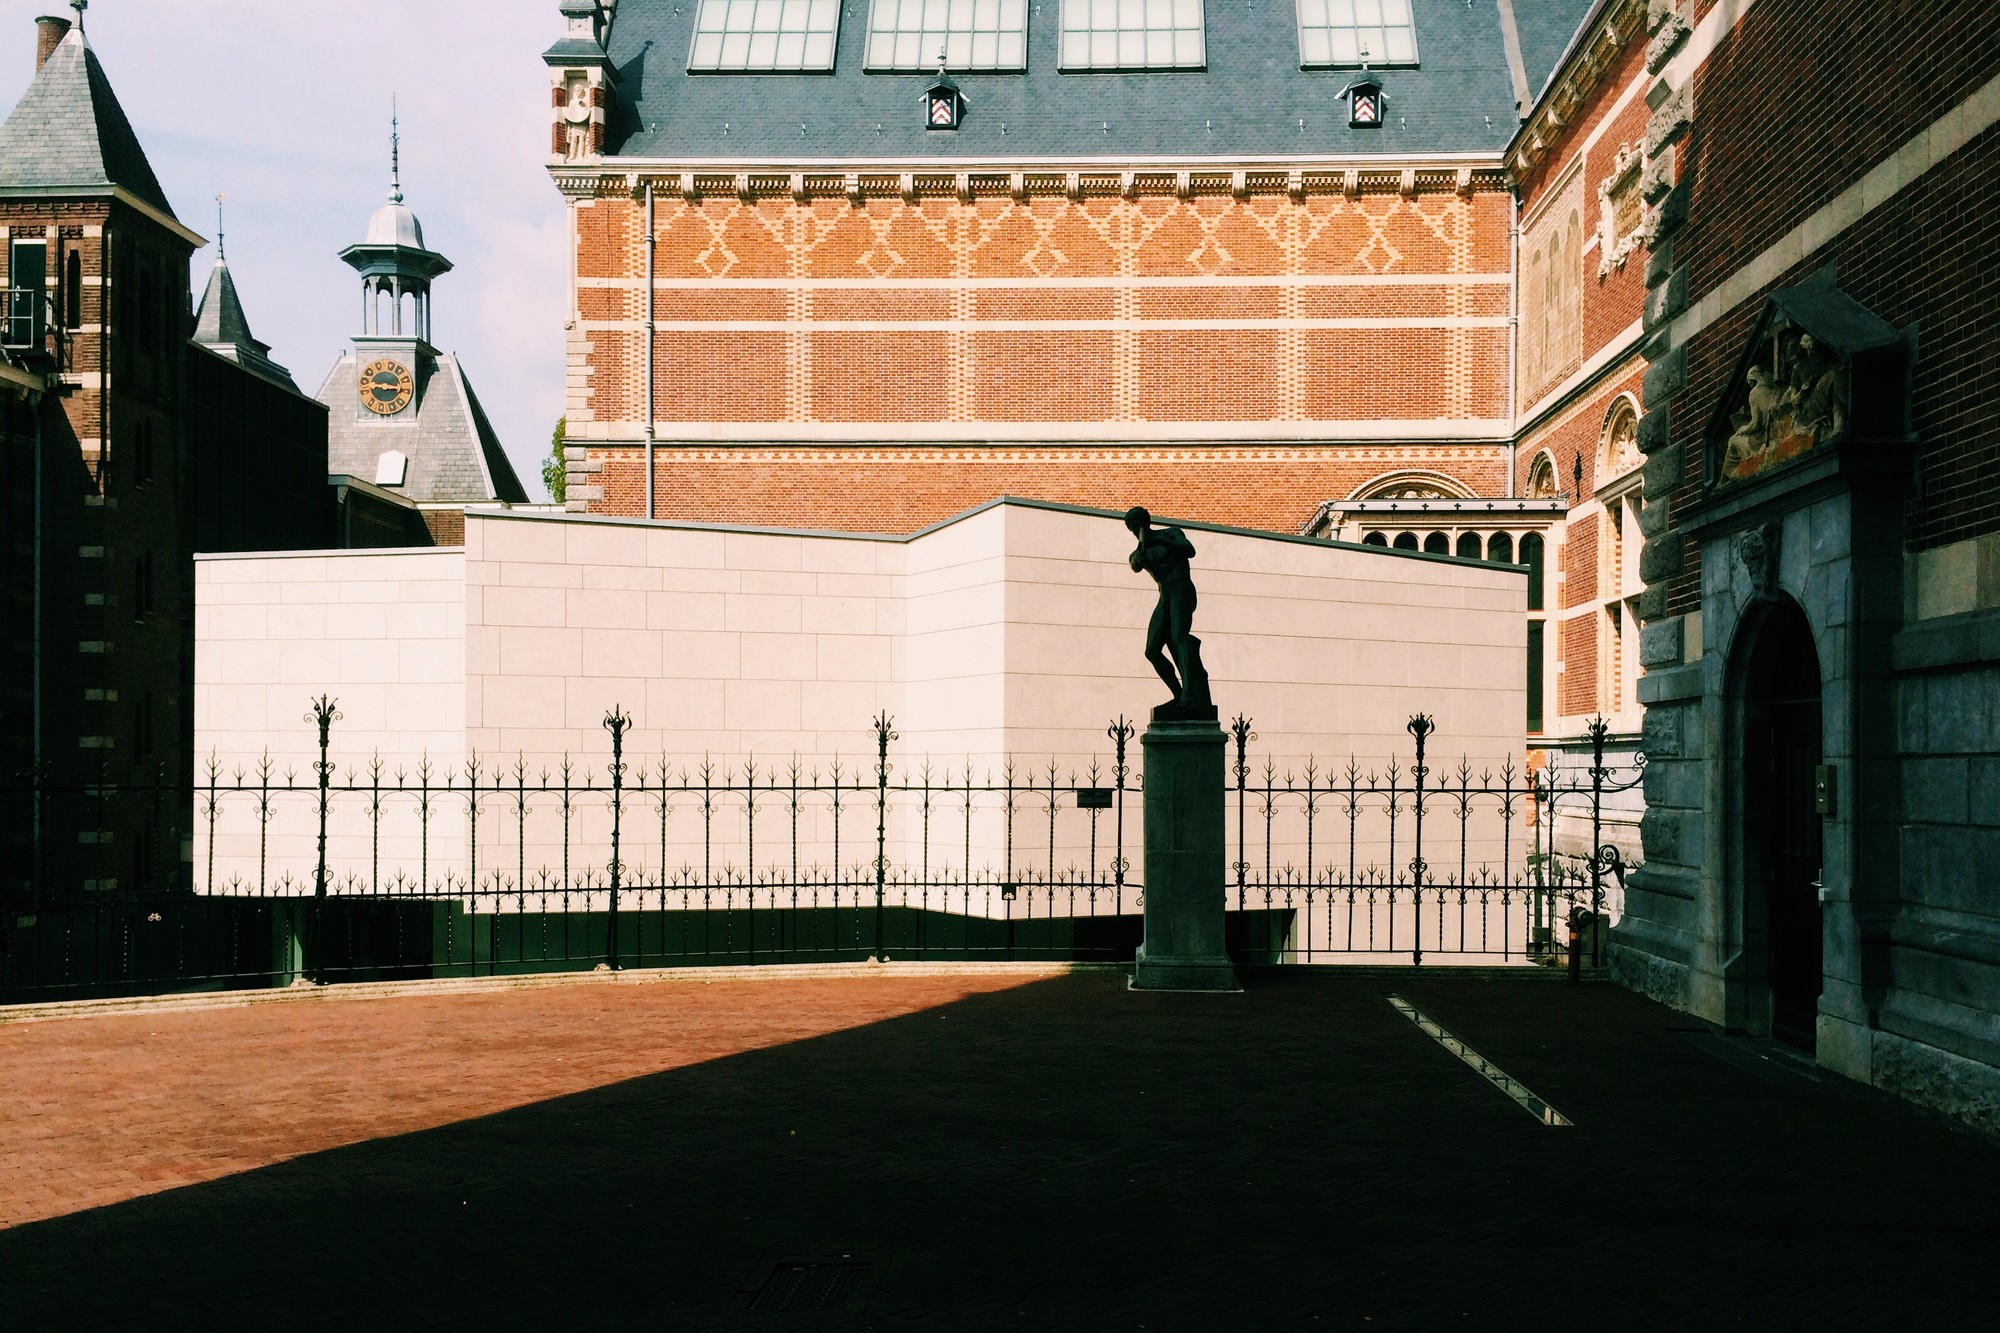 The Asian Pavilion set against the Rijksmuseum, April 2014. Image © James Taylor-Foster